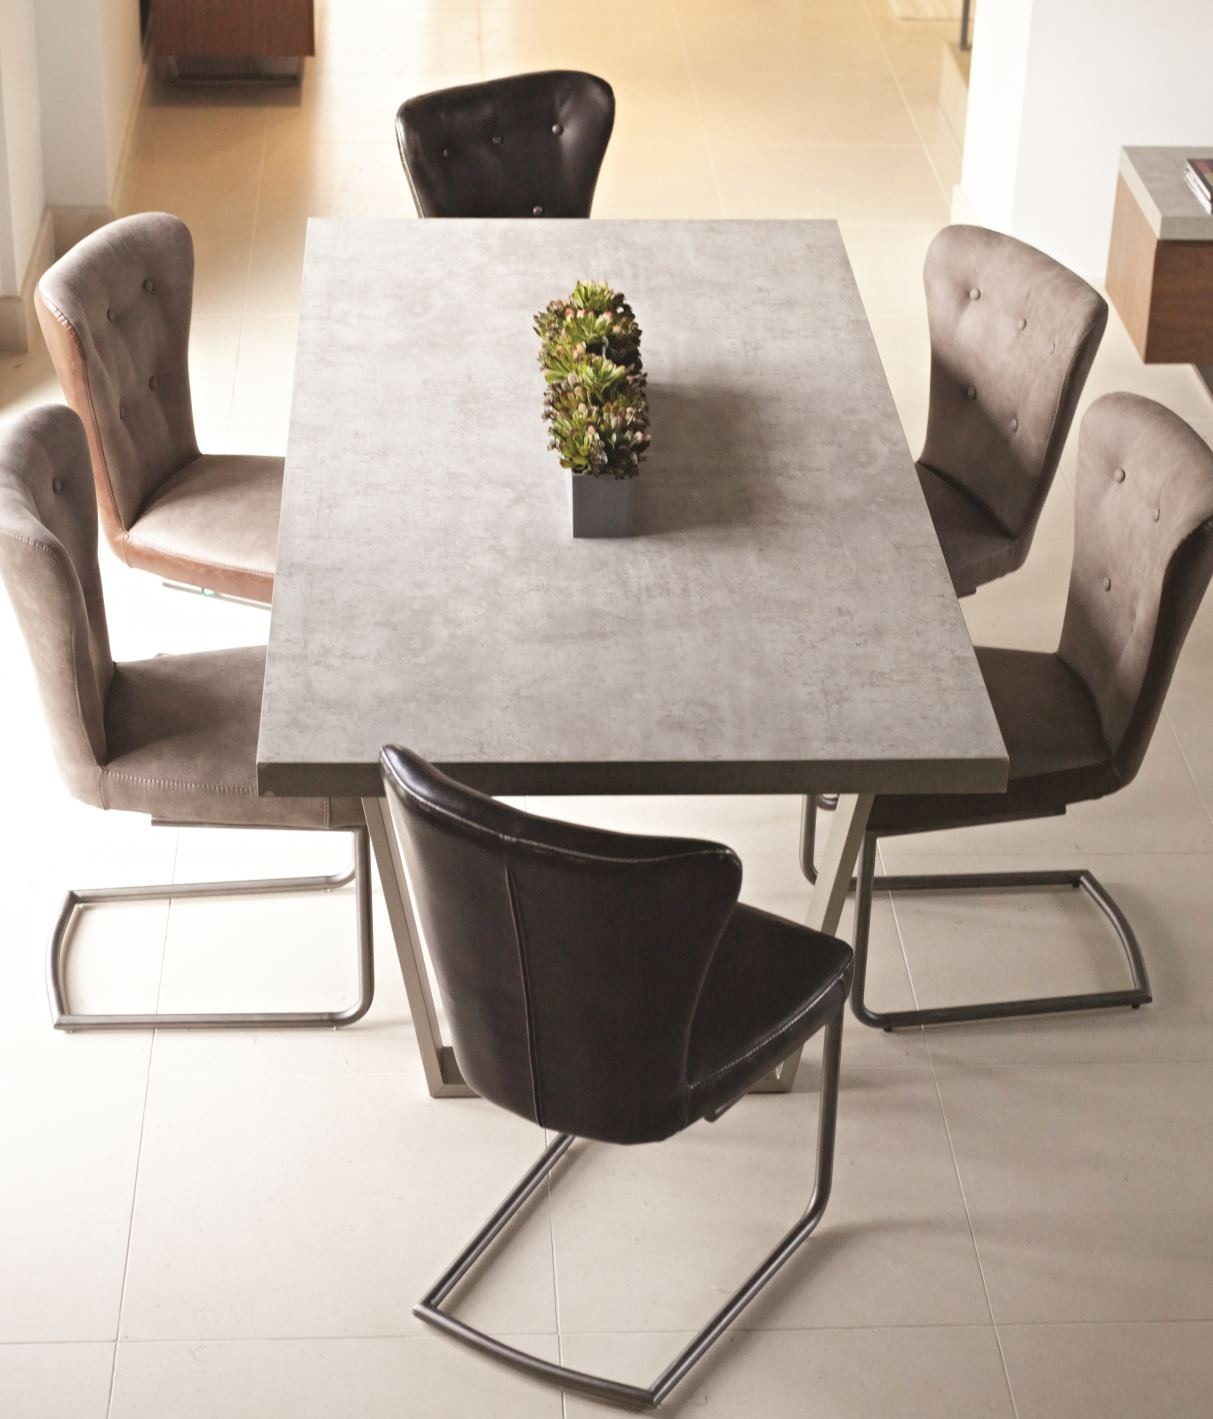 CONCRETE LOOK DINING SET - TOP DETAIL